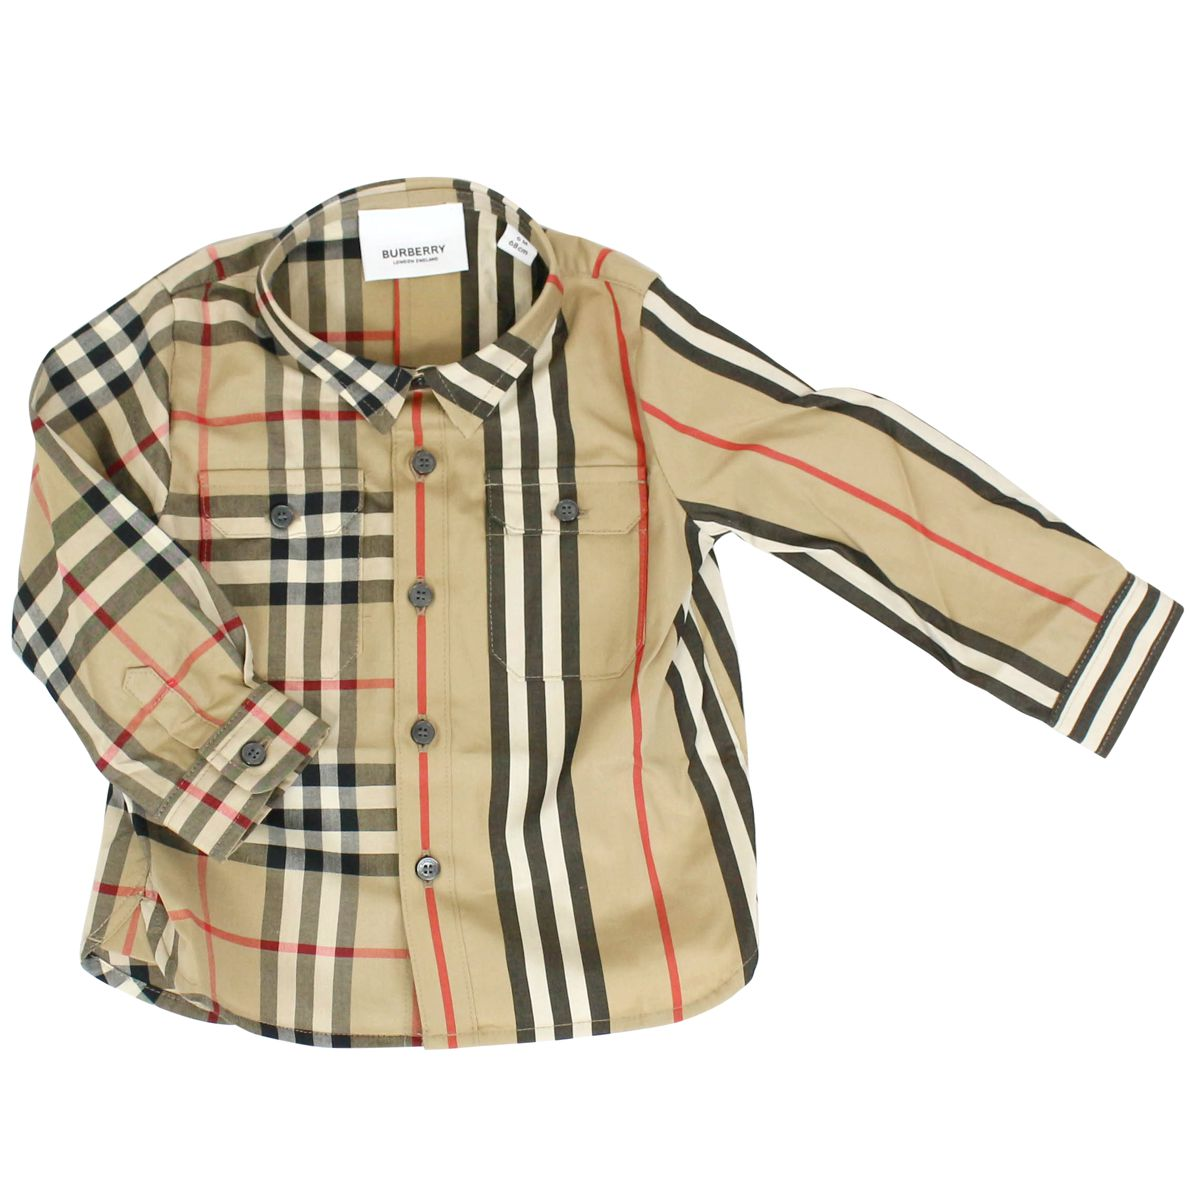 Amir shirt with check all over pattern Beige check Burberry